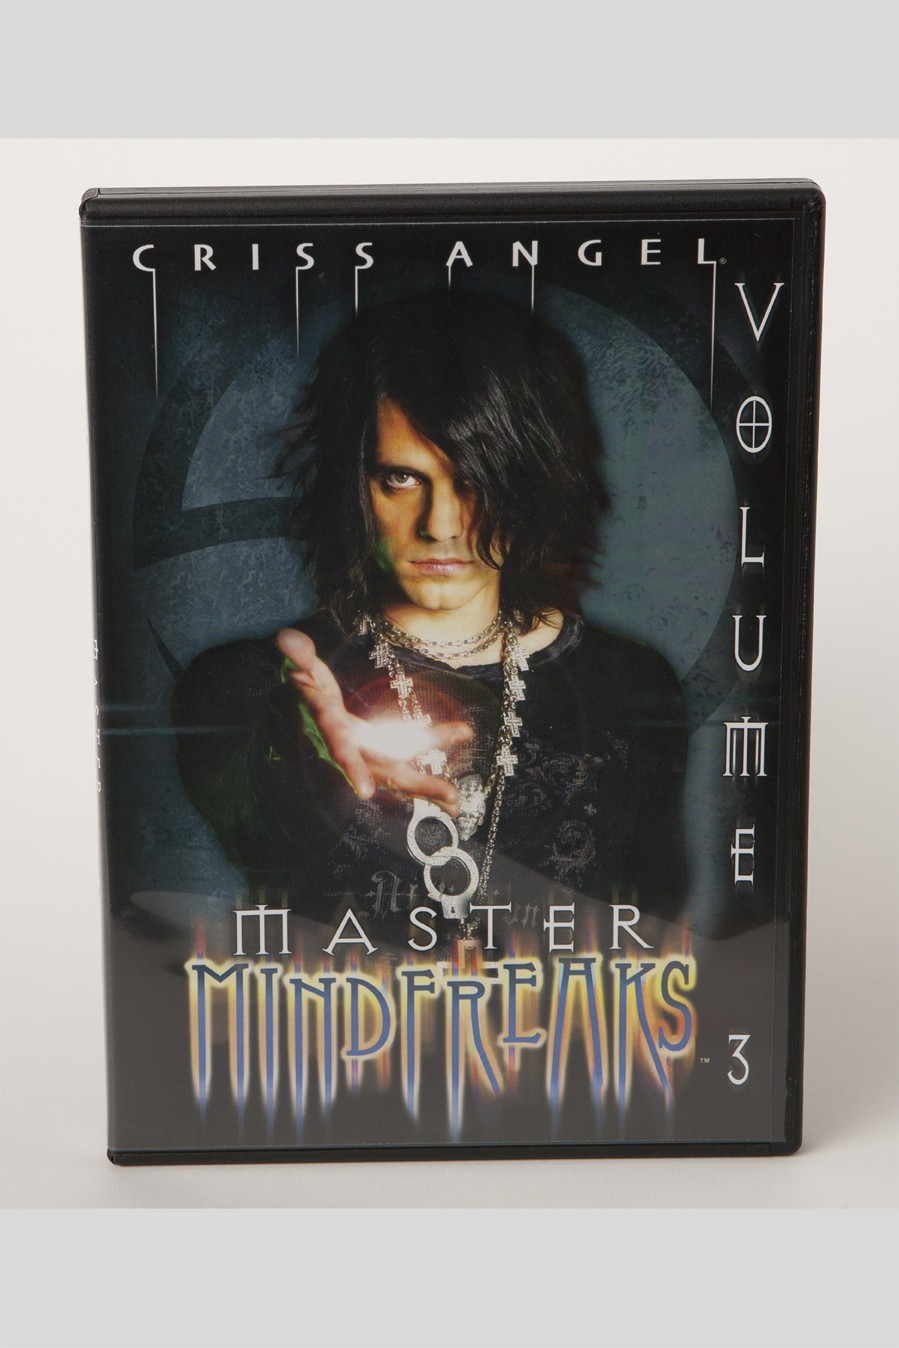 DVD CRISS ANGEL MASTER MINDFREAKS VOL 3